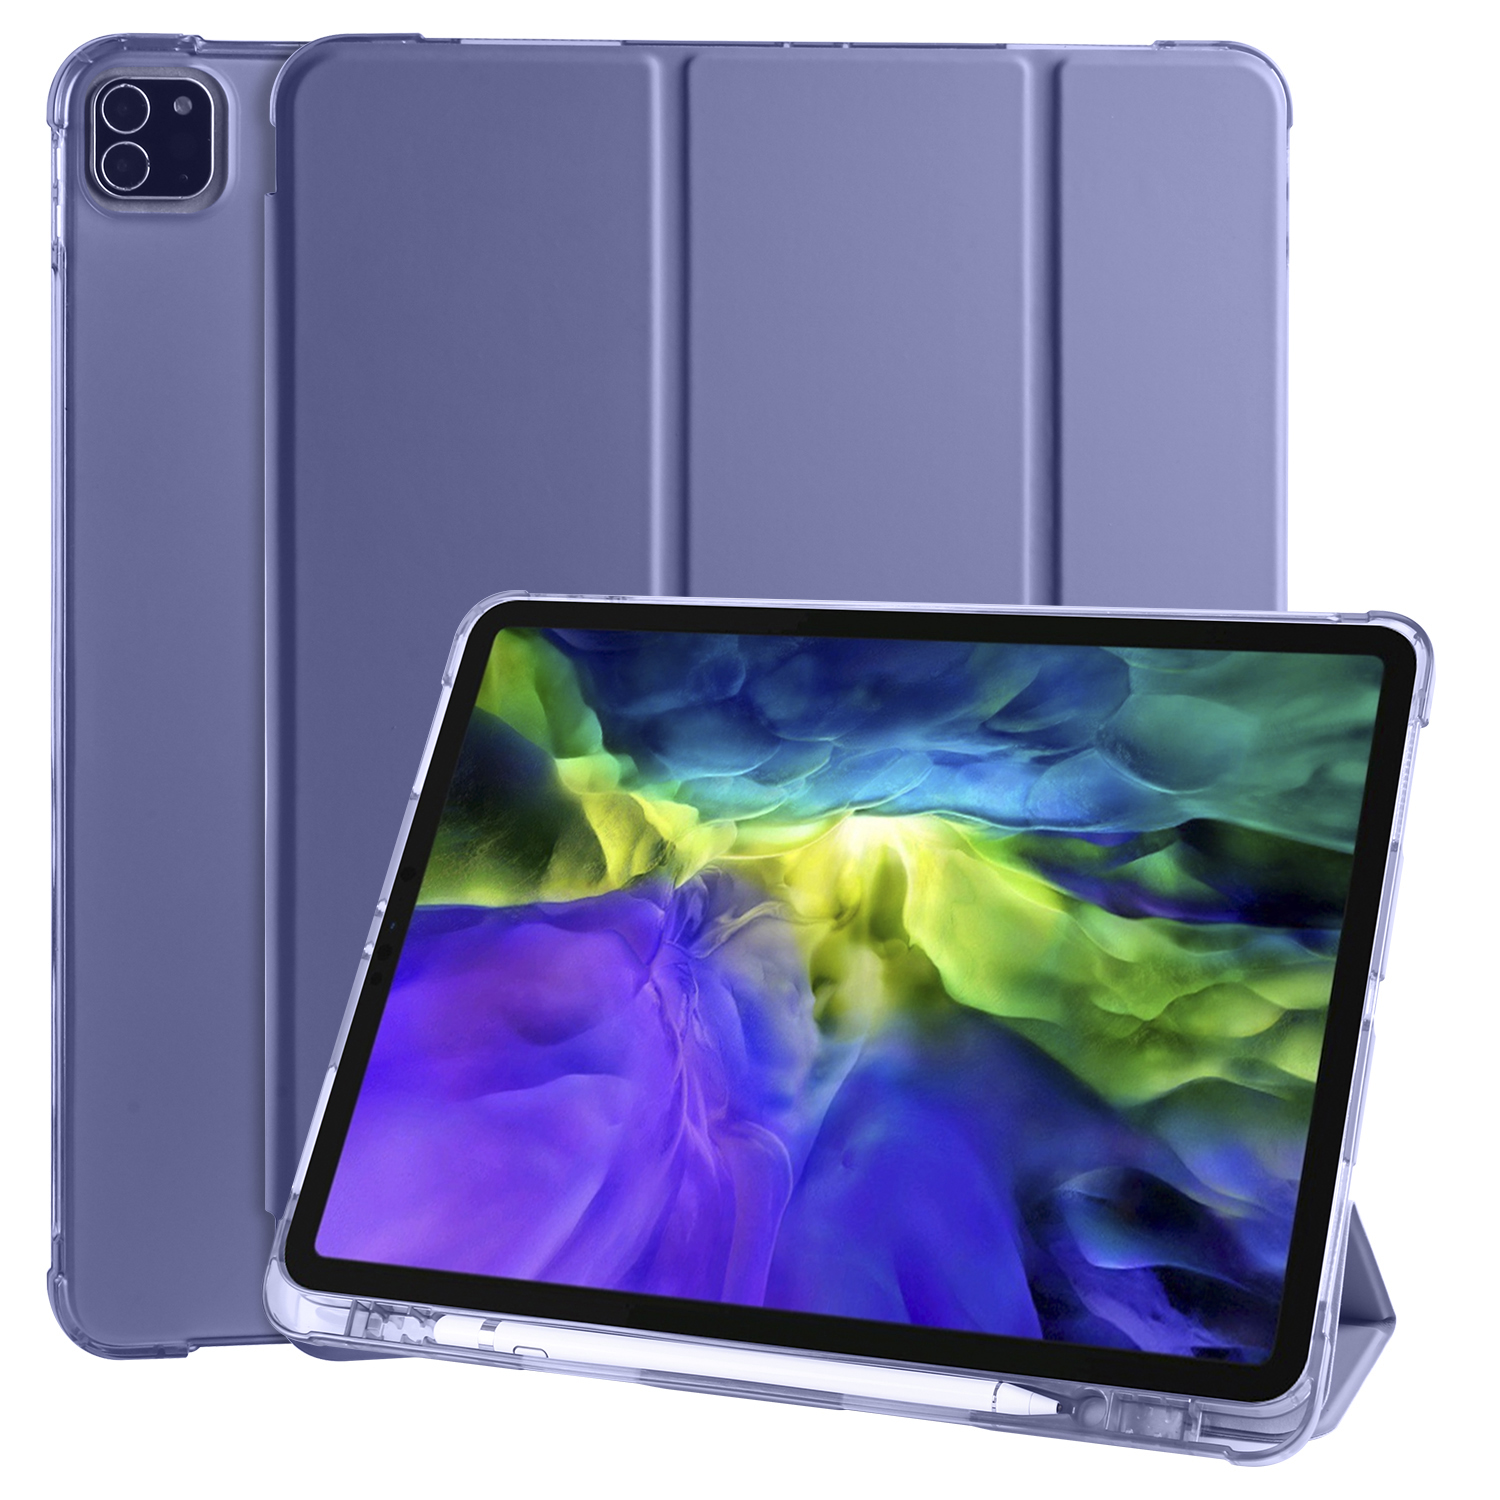 Purple Champagne Smart Soft Shockproof Case for iPad Pro 12 9 2020 2018 3rd 4th Generation with Pen